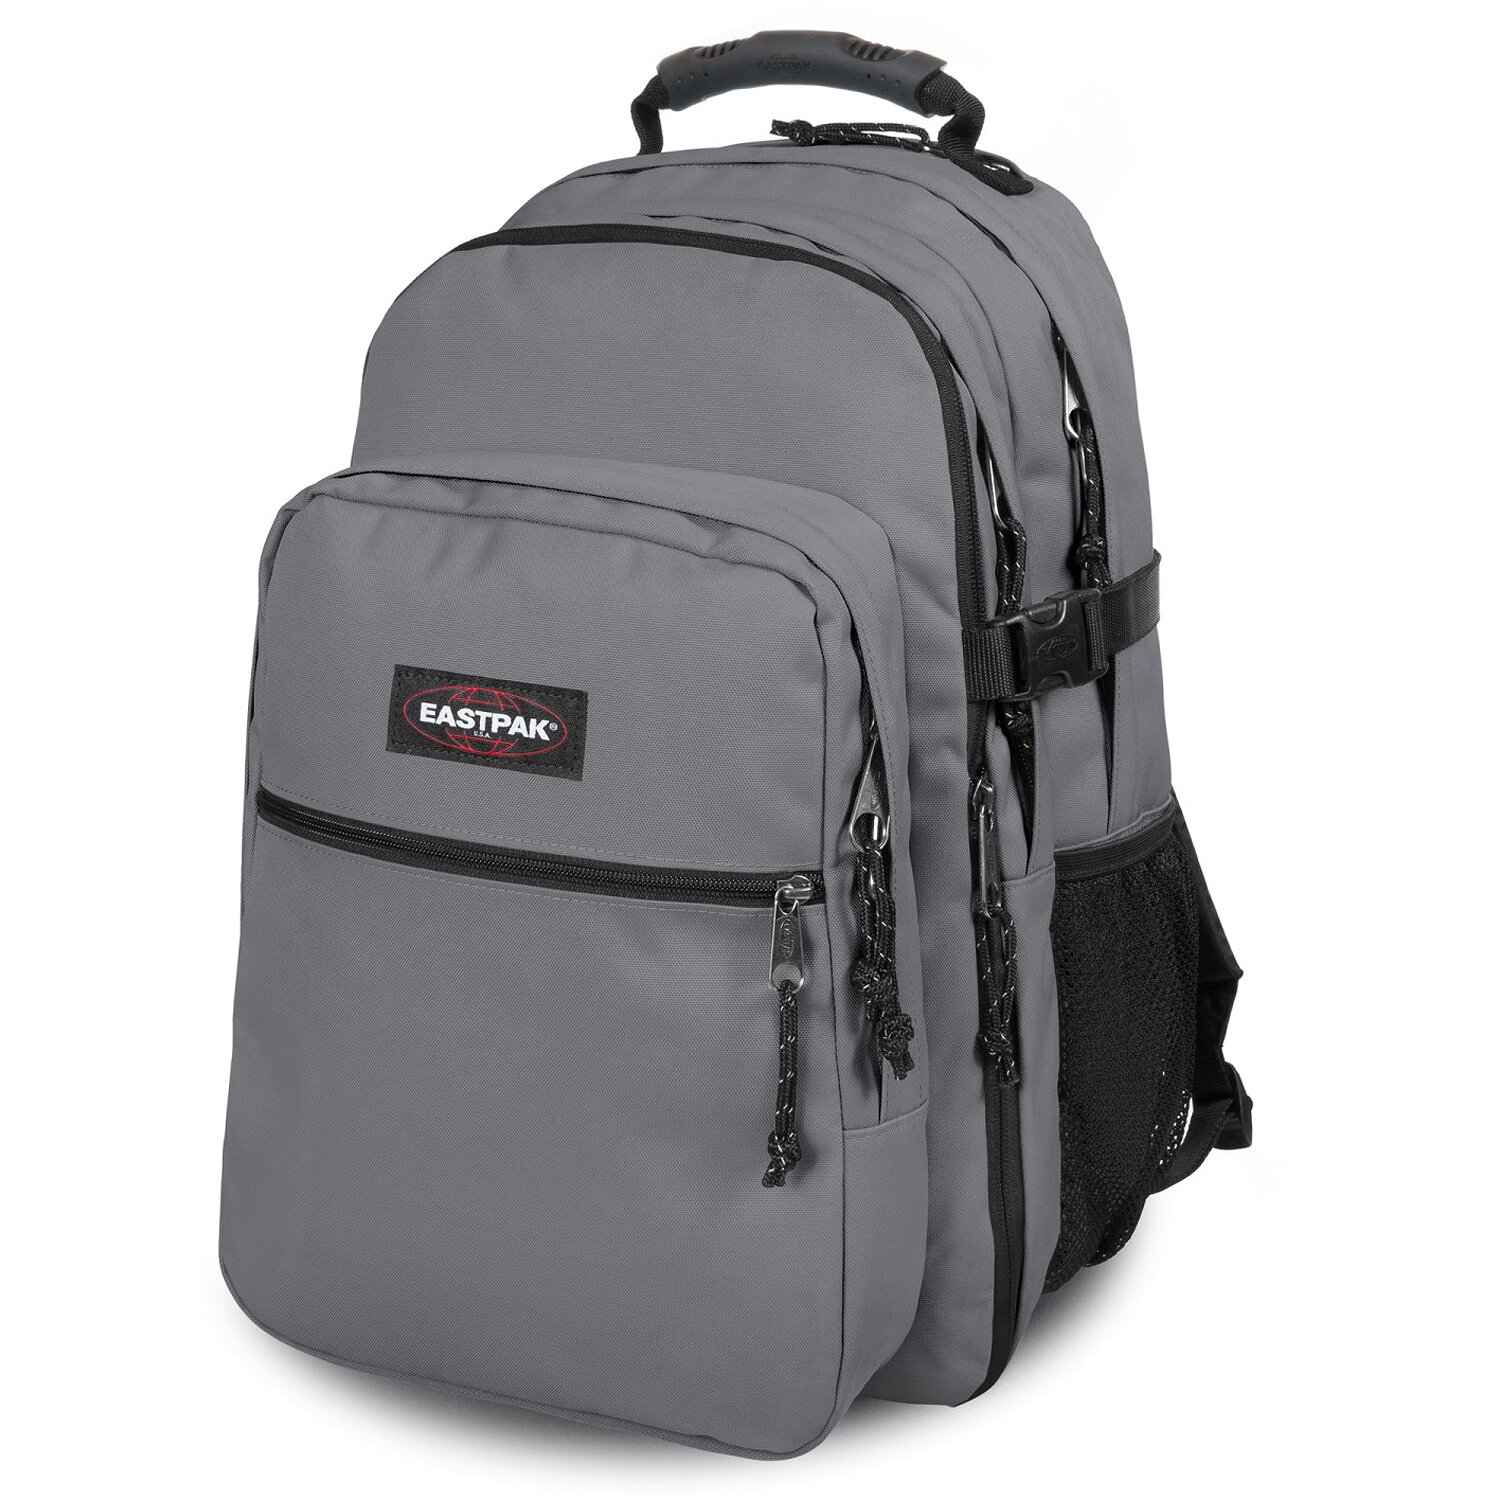 d15ccc0da9677 Eastpak Campus Tutor Rucksack 48 cm Laptopfach sunday grey